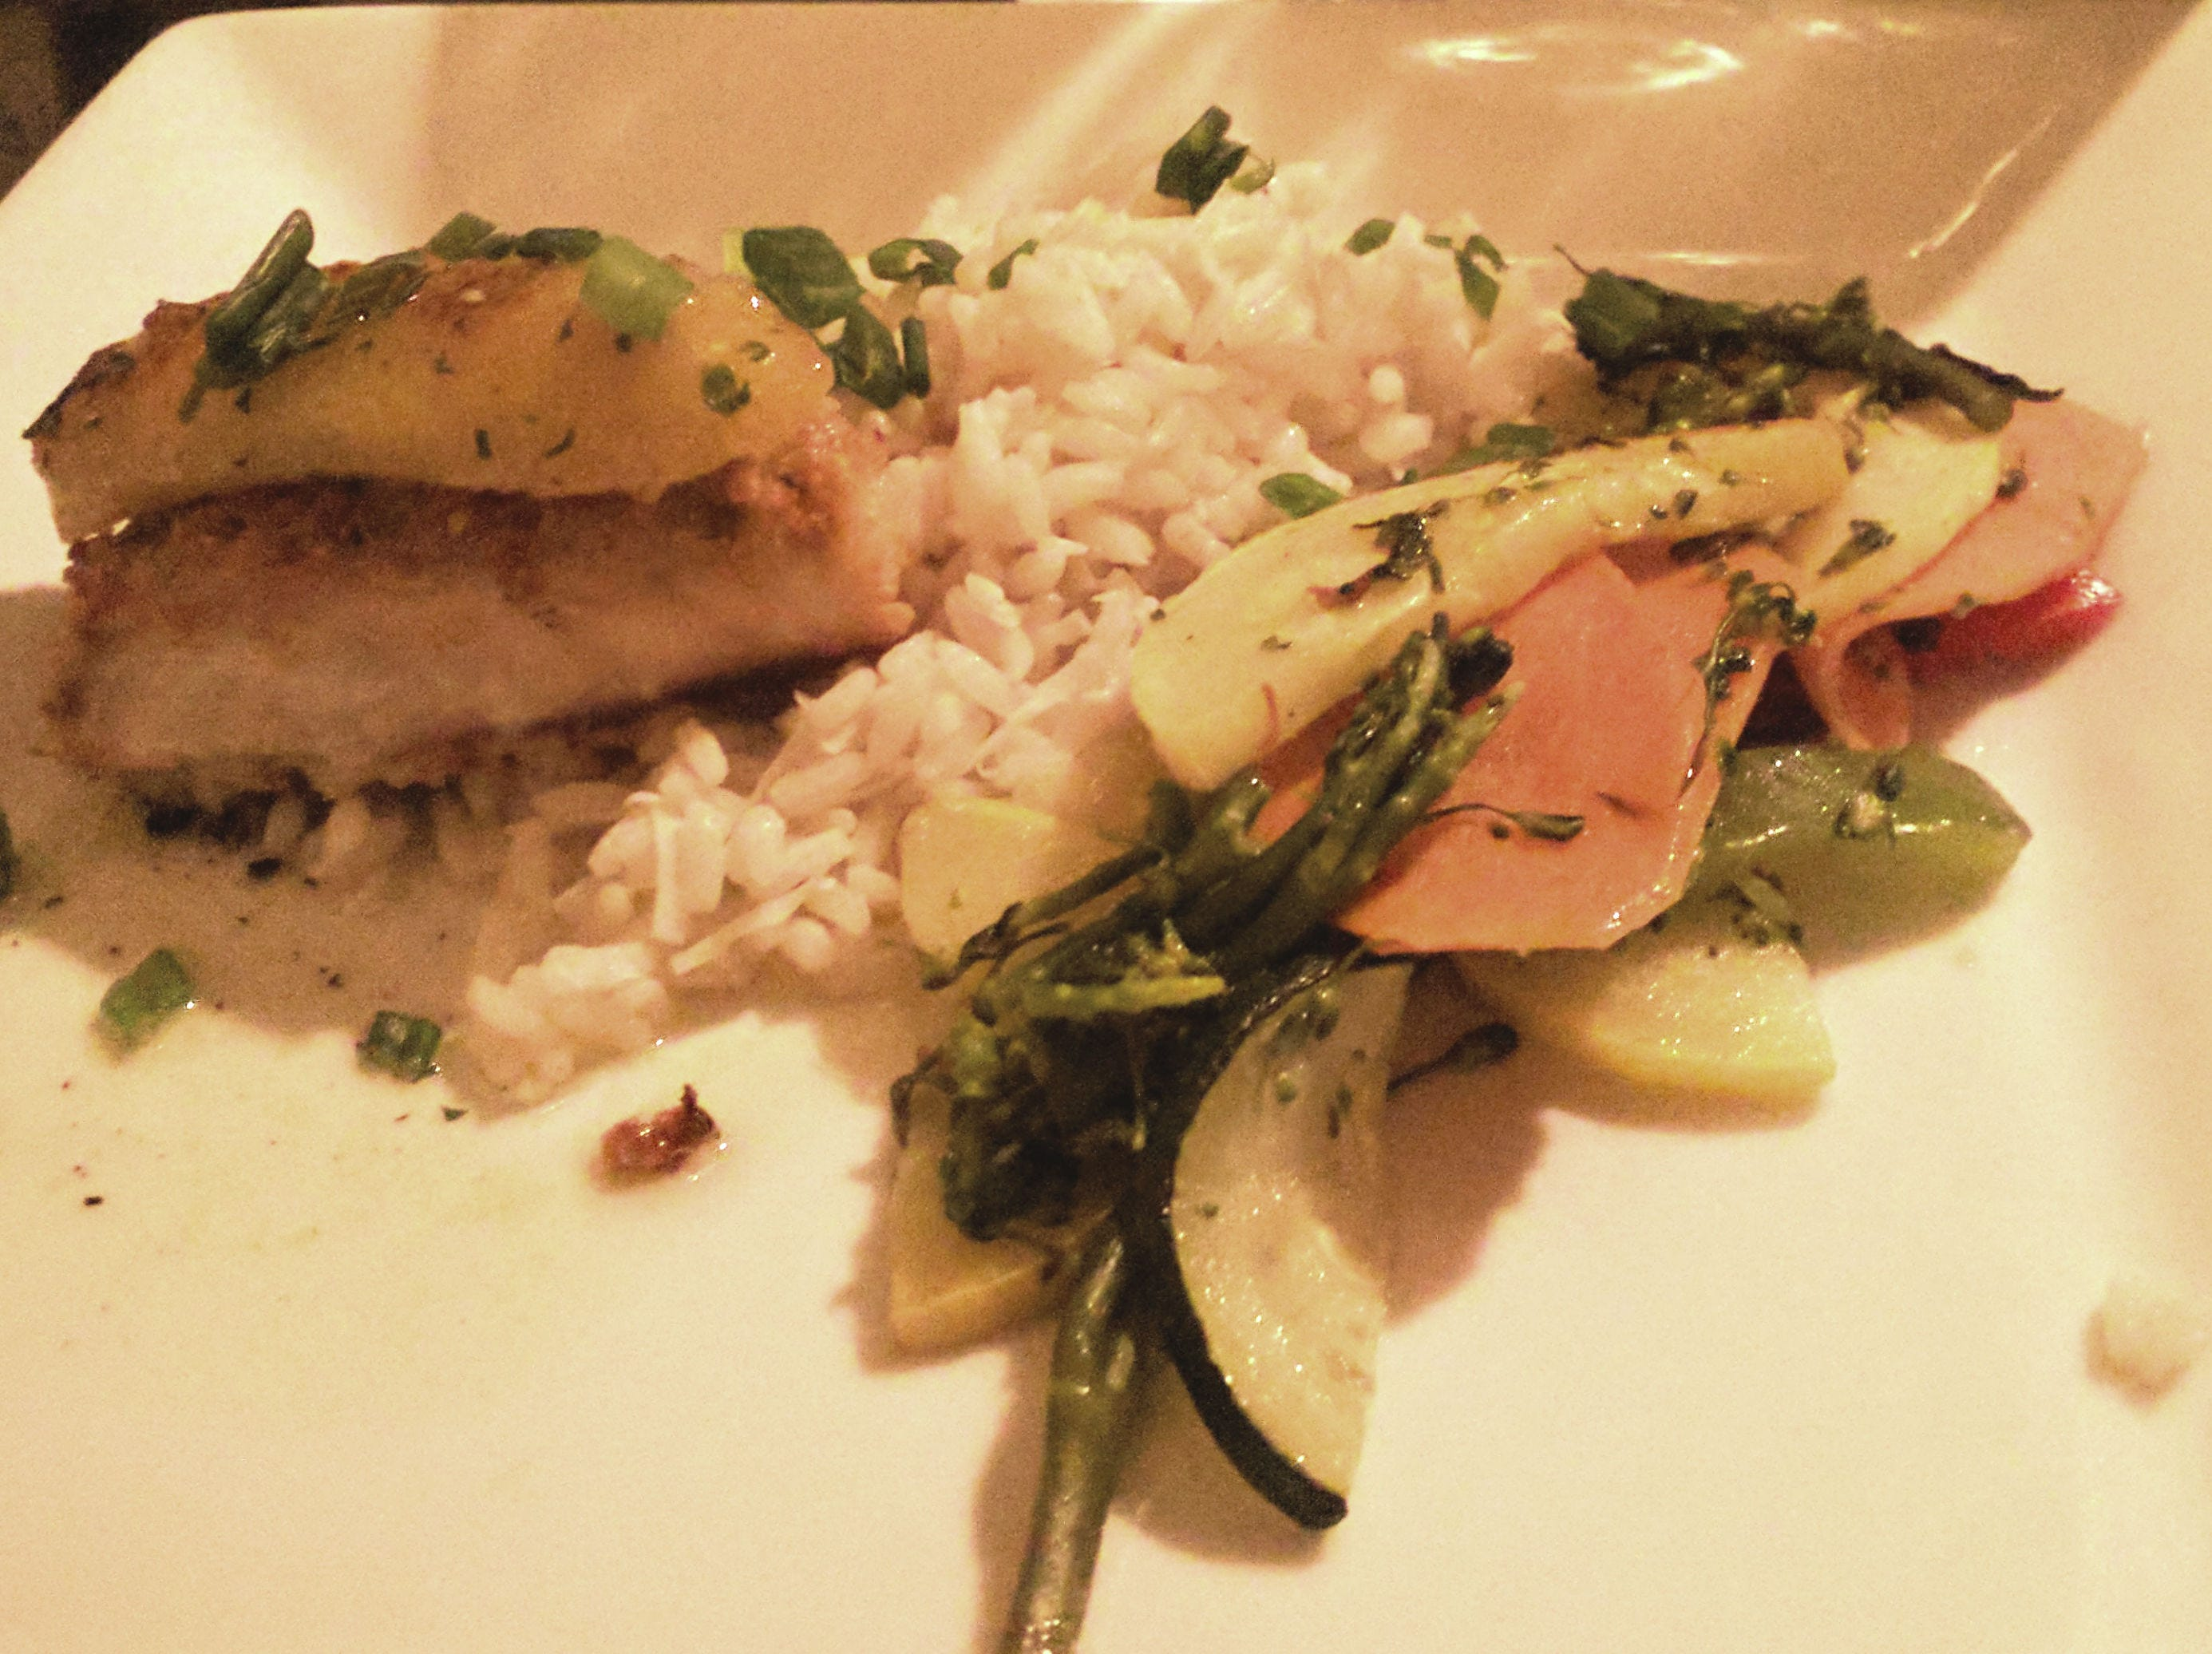 Havana Nights' half portion of mahi  with white rice and a carrot, asparagus and zucchini medley.